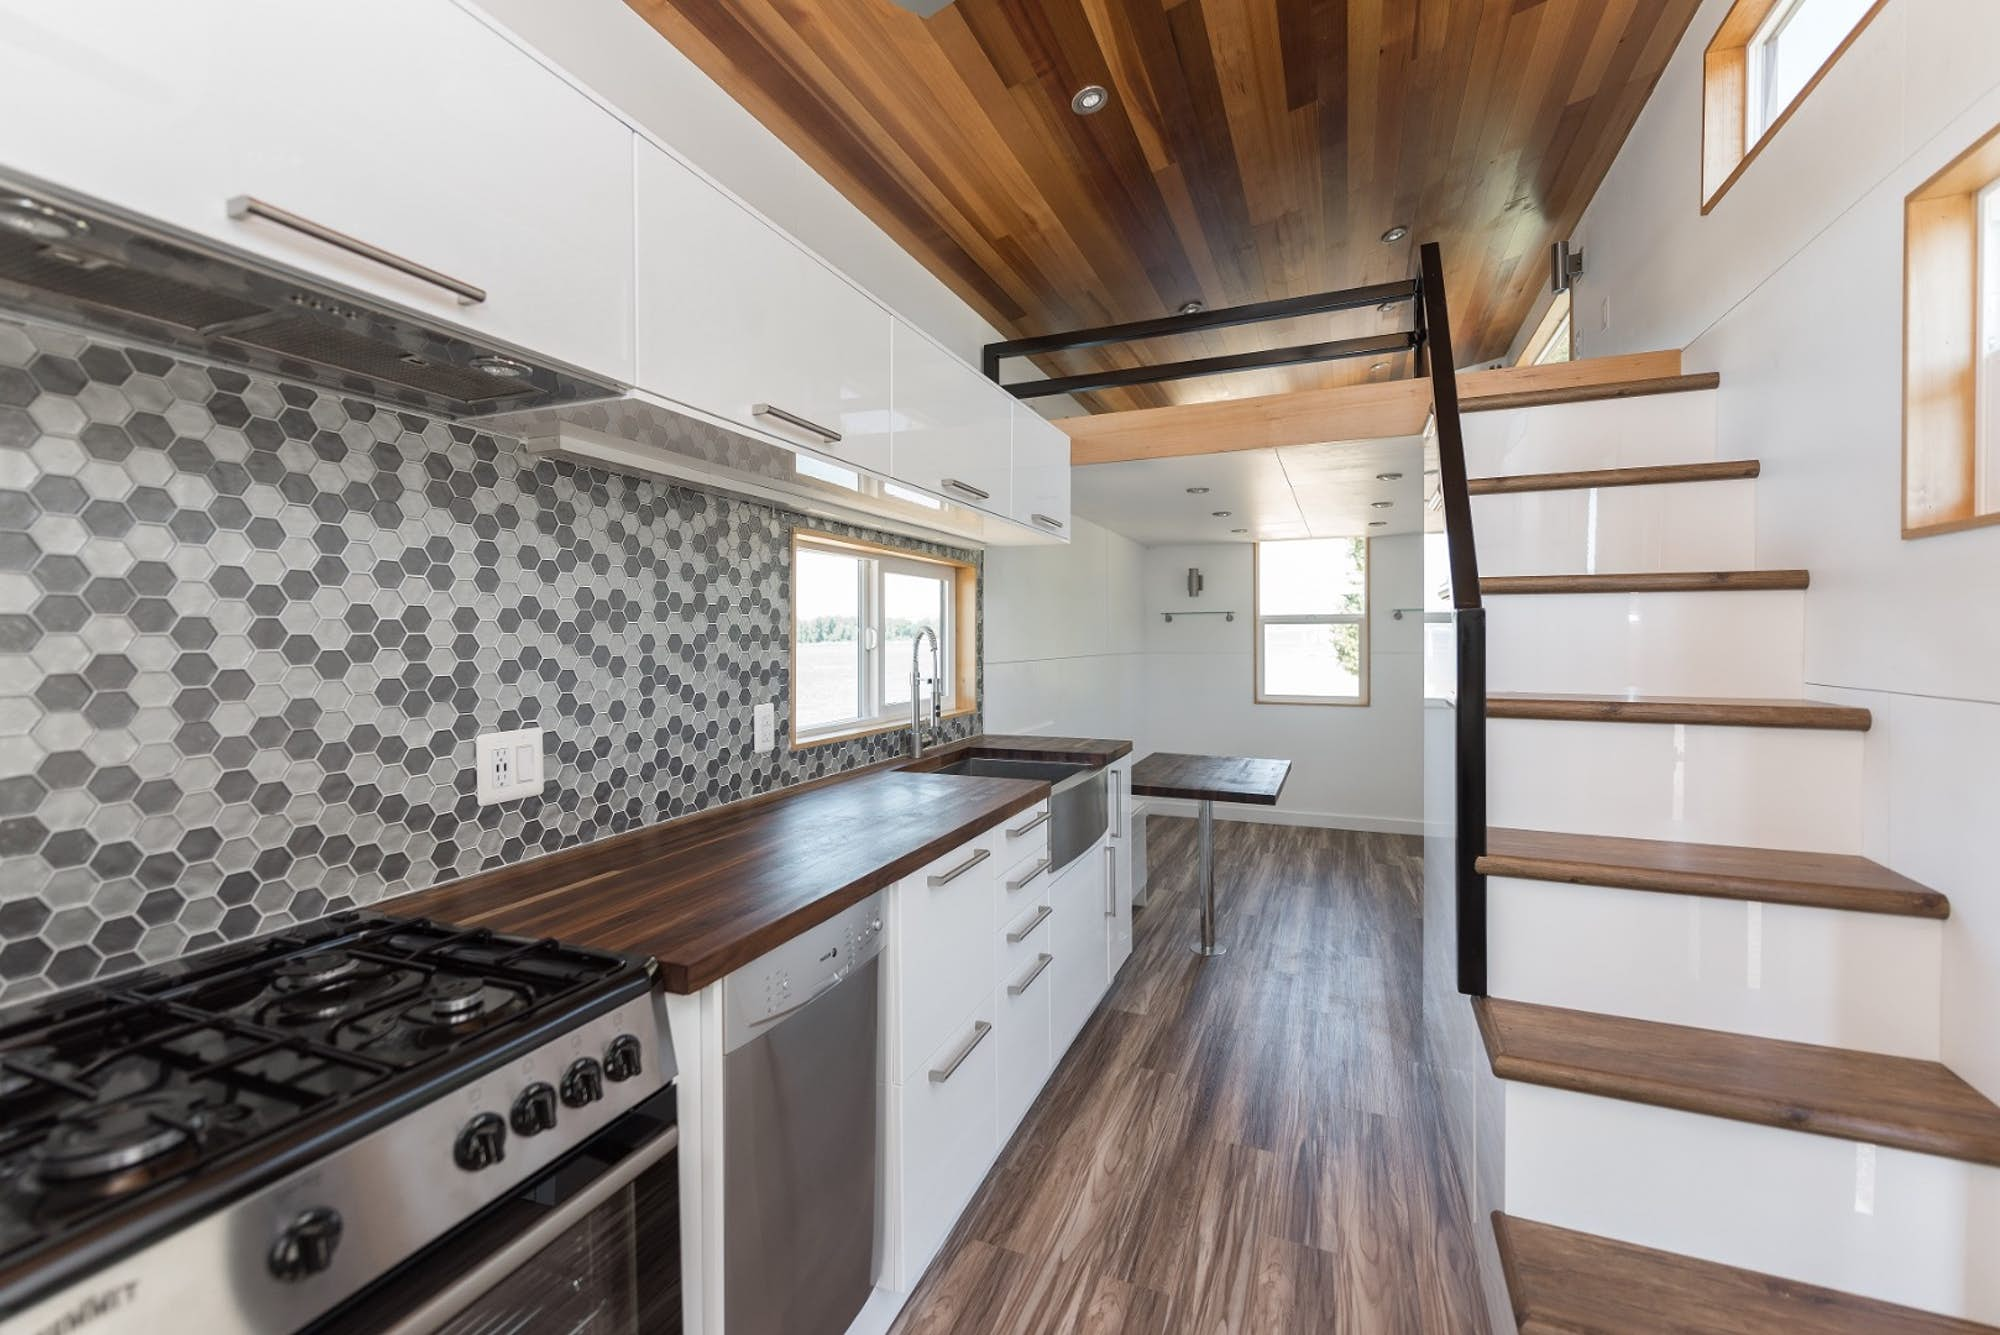 The Home Comes In Three Lengthsu201424, 28, Or 32 Feetu2014with Exterior Details  Including Cedar Accent Siding And Black Metal Framing. Inside, The Home Has  Ample ...